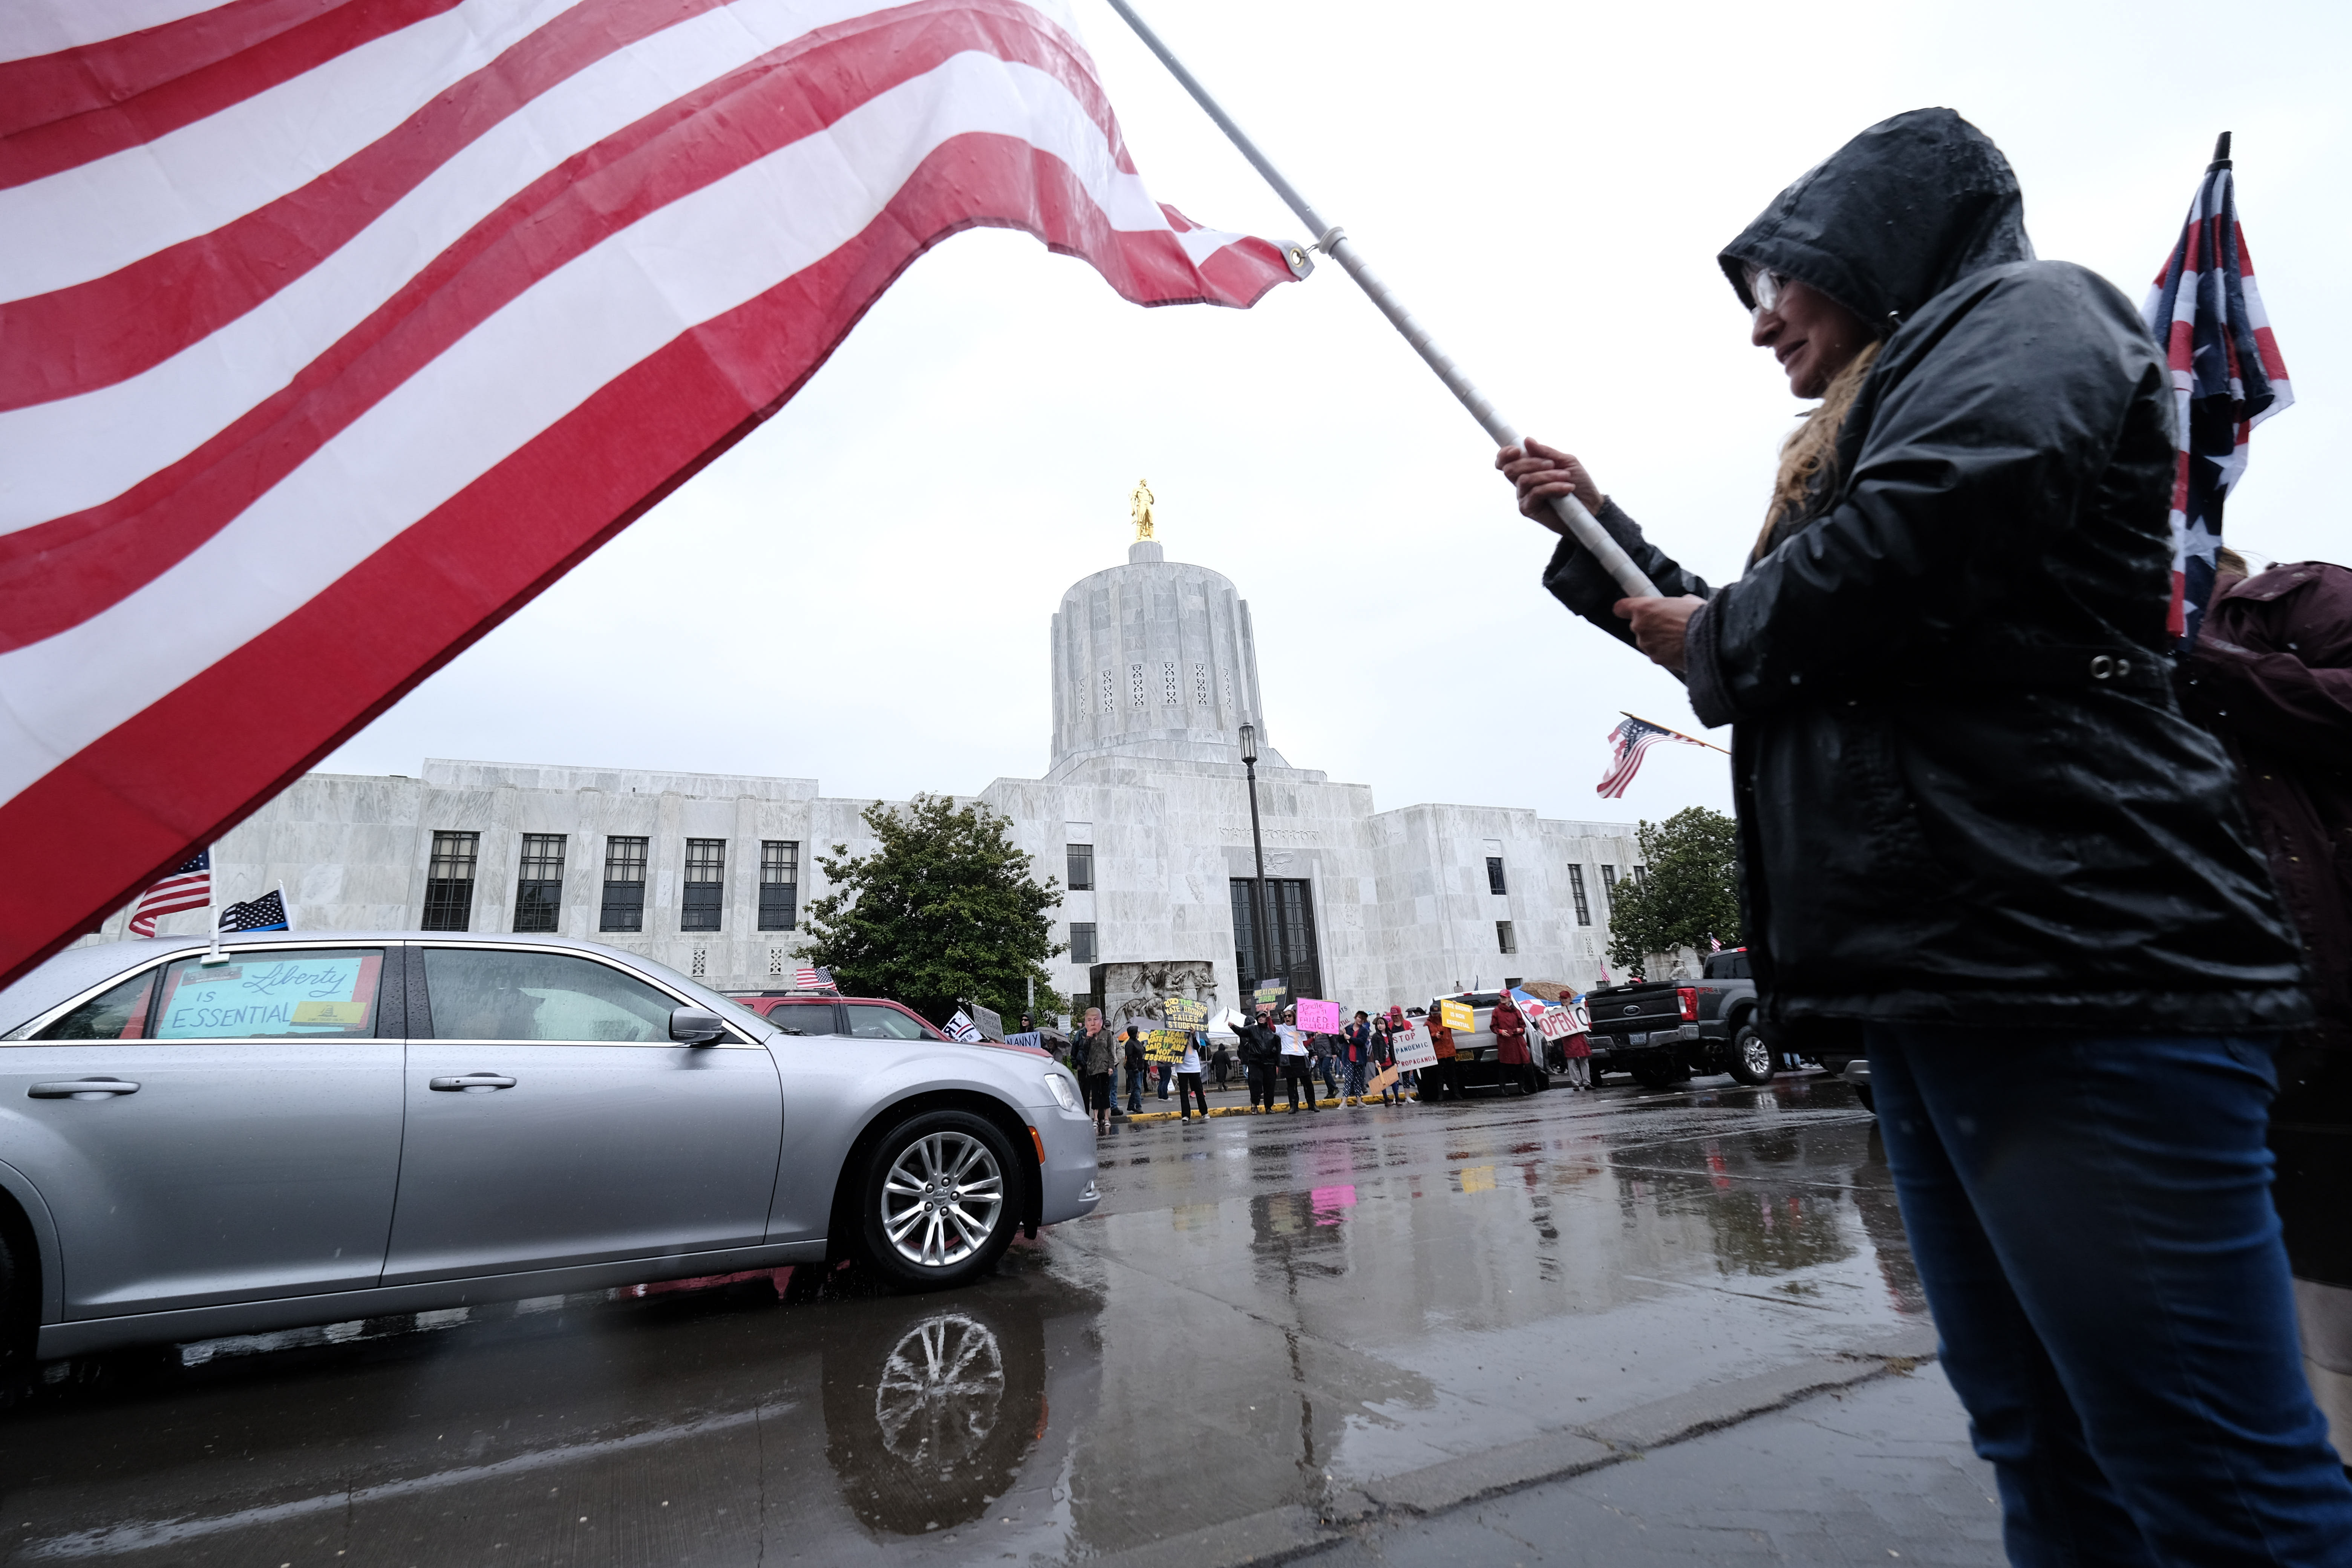 Protestors Rally At Oregon State Capitol Against Stay-At-Home Order